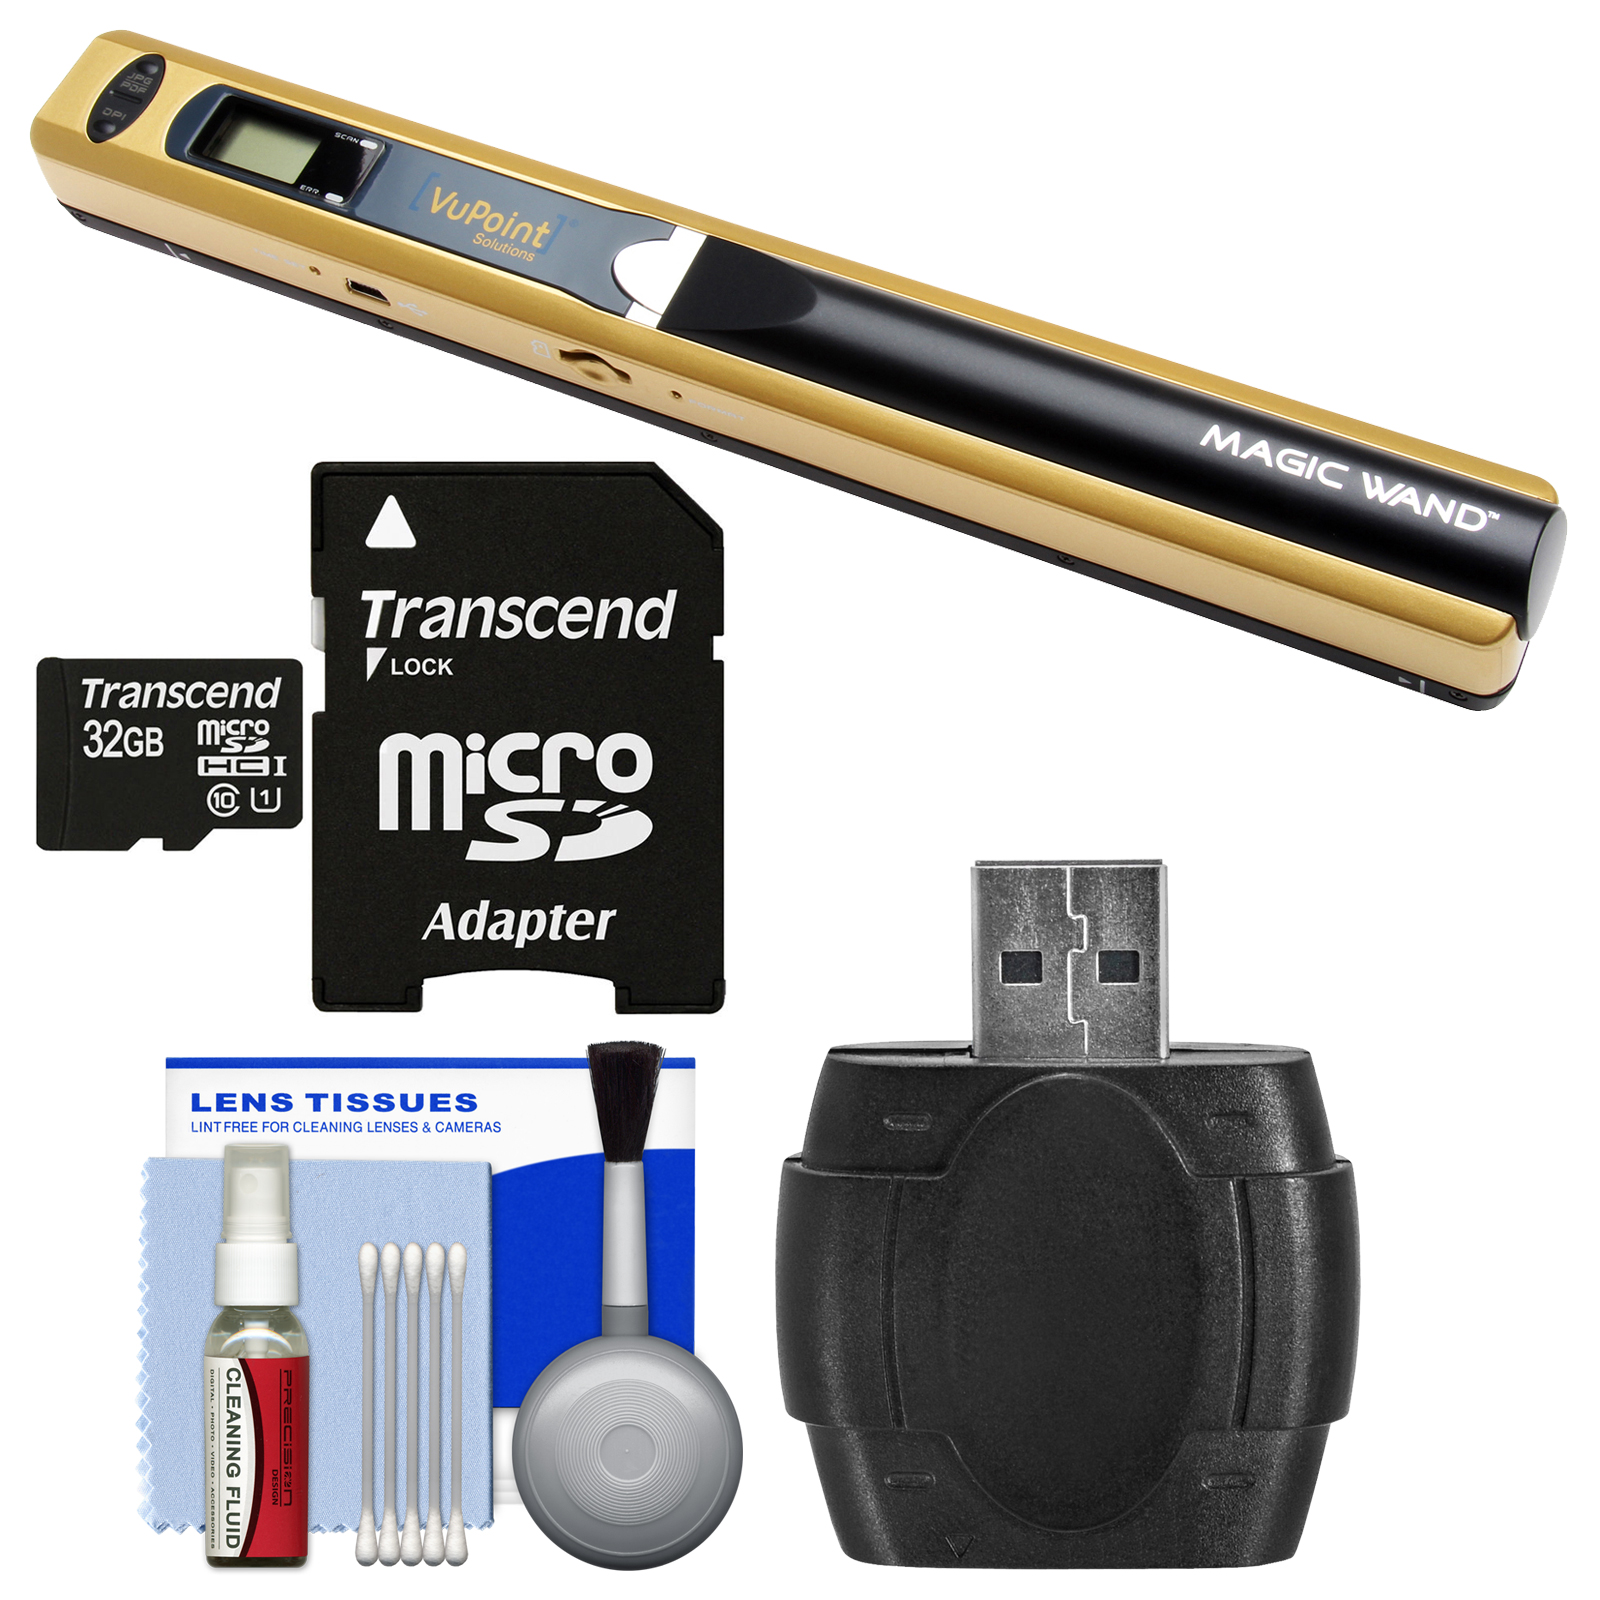 VuPoint Magic Wand Portable Photo & Document Scanner (Metallic Gold) with 32GB Card & Reader + Kit